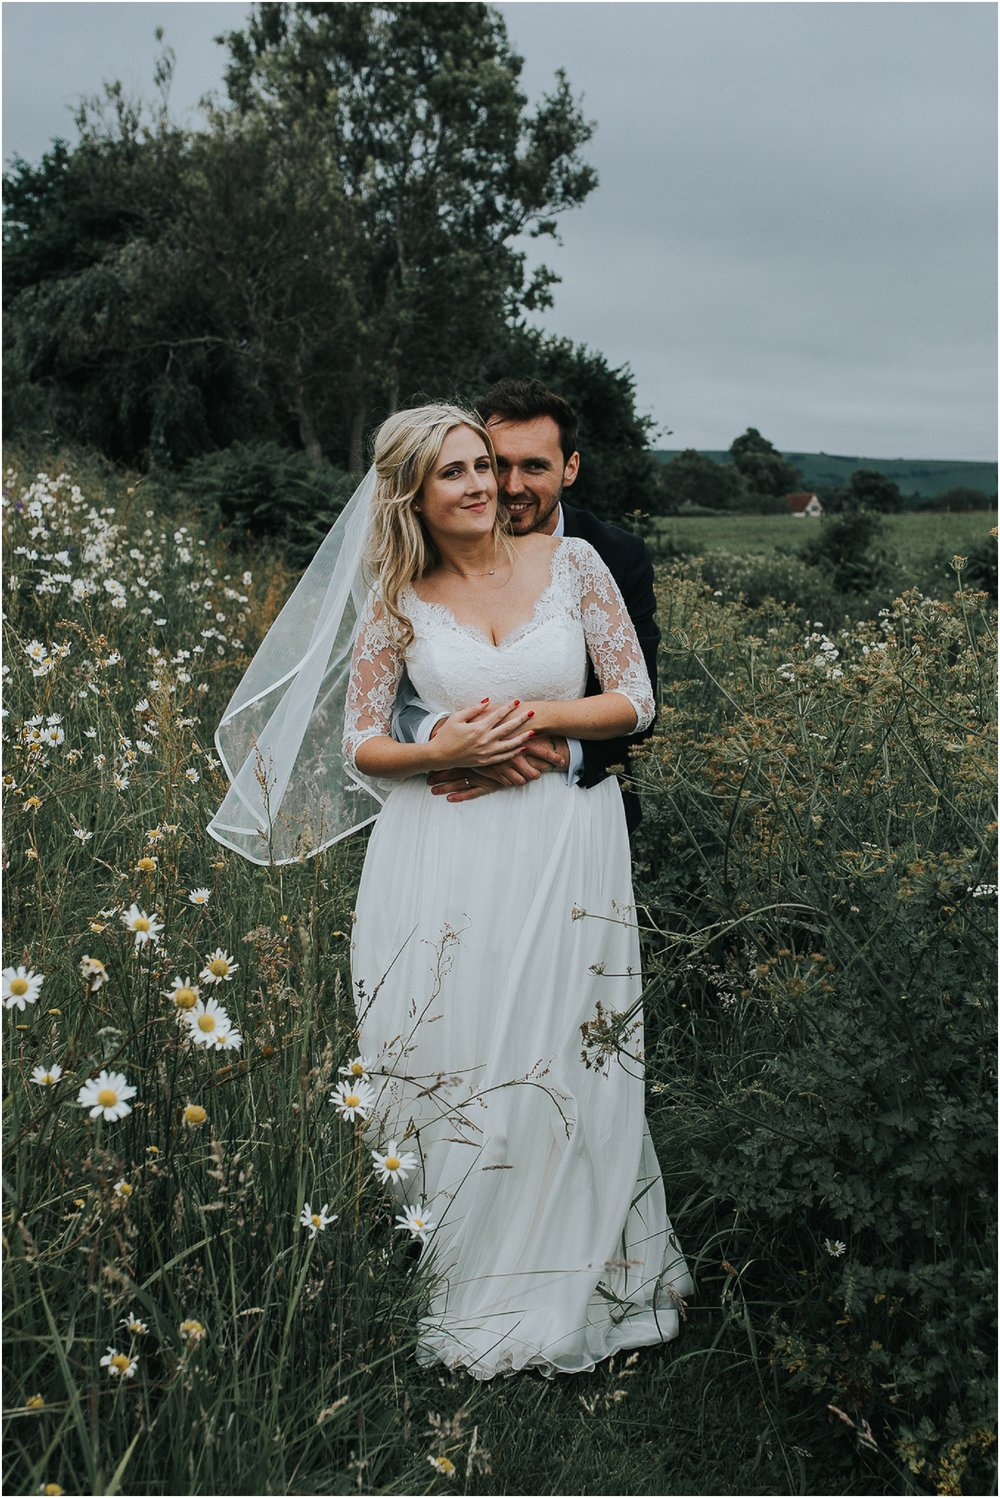 Manchester wedding photographer Tora Baker